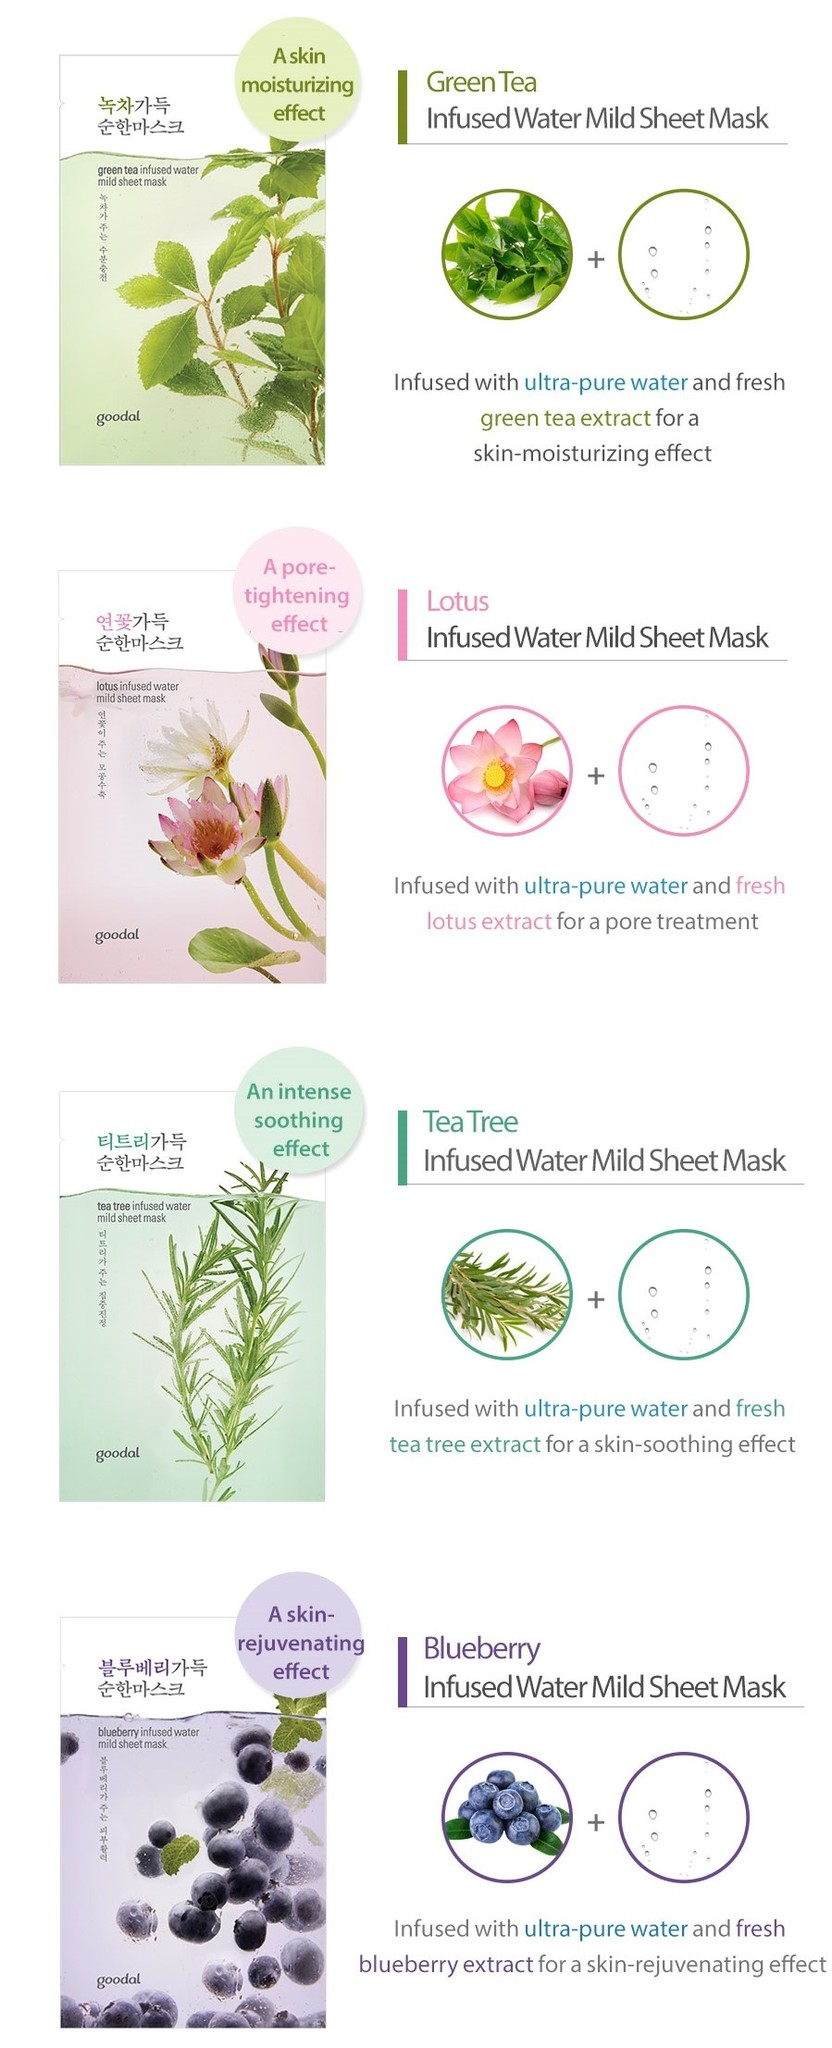 citron infused water mild sheet mask-6